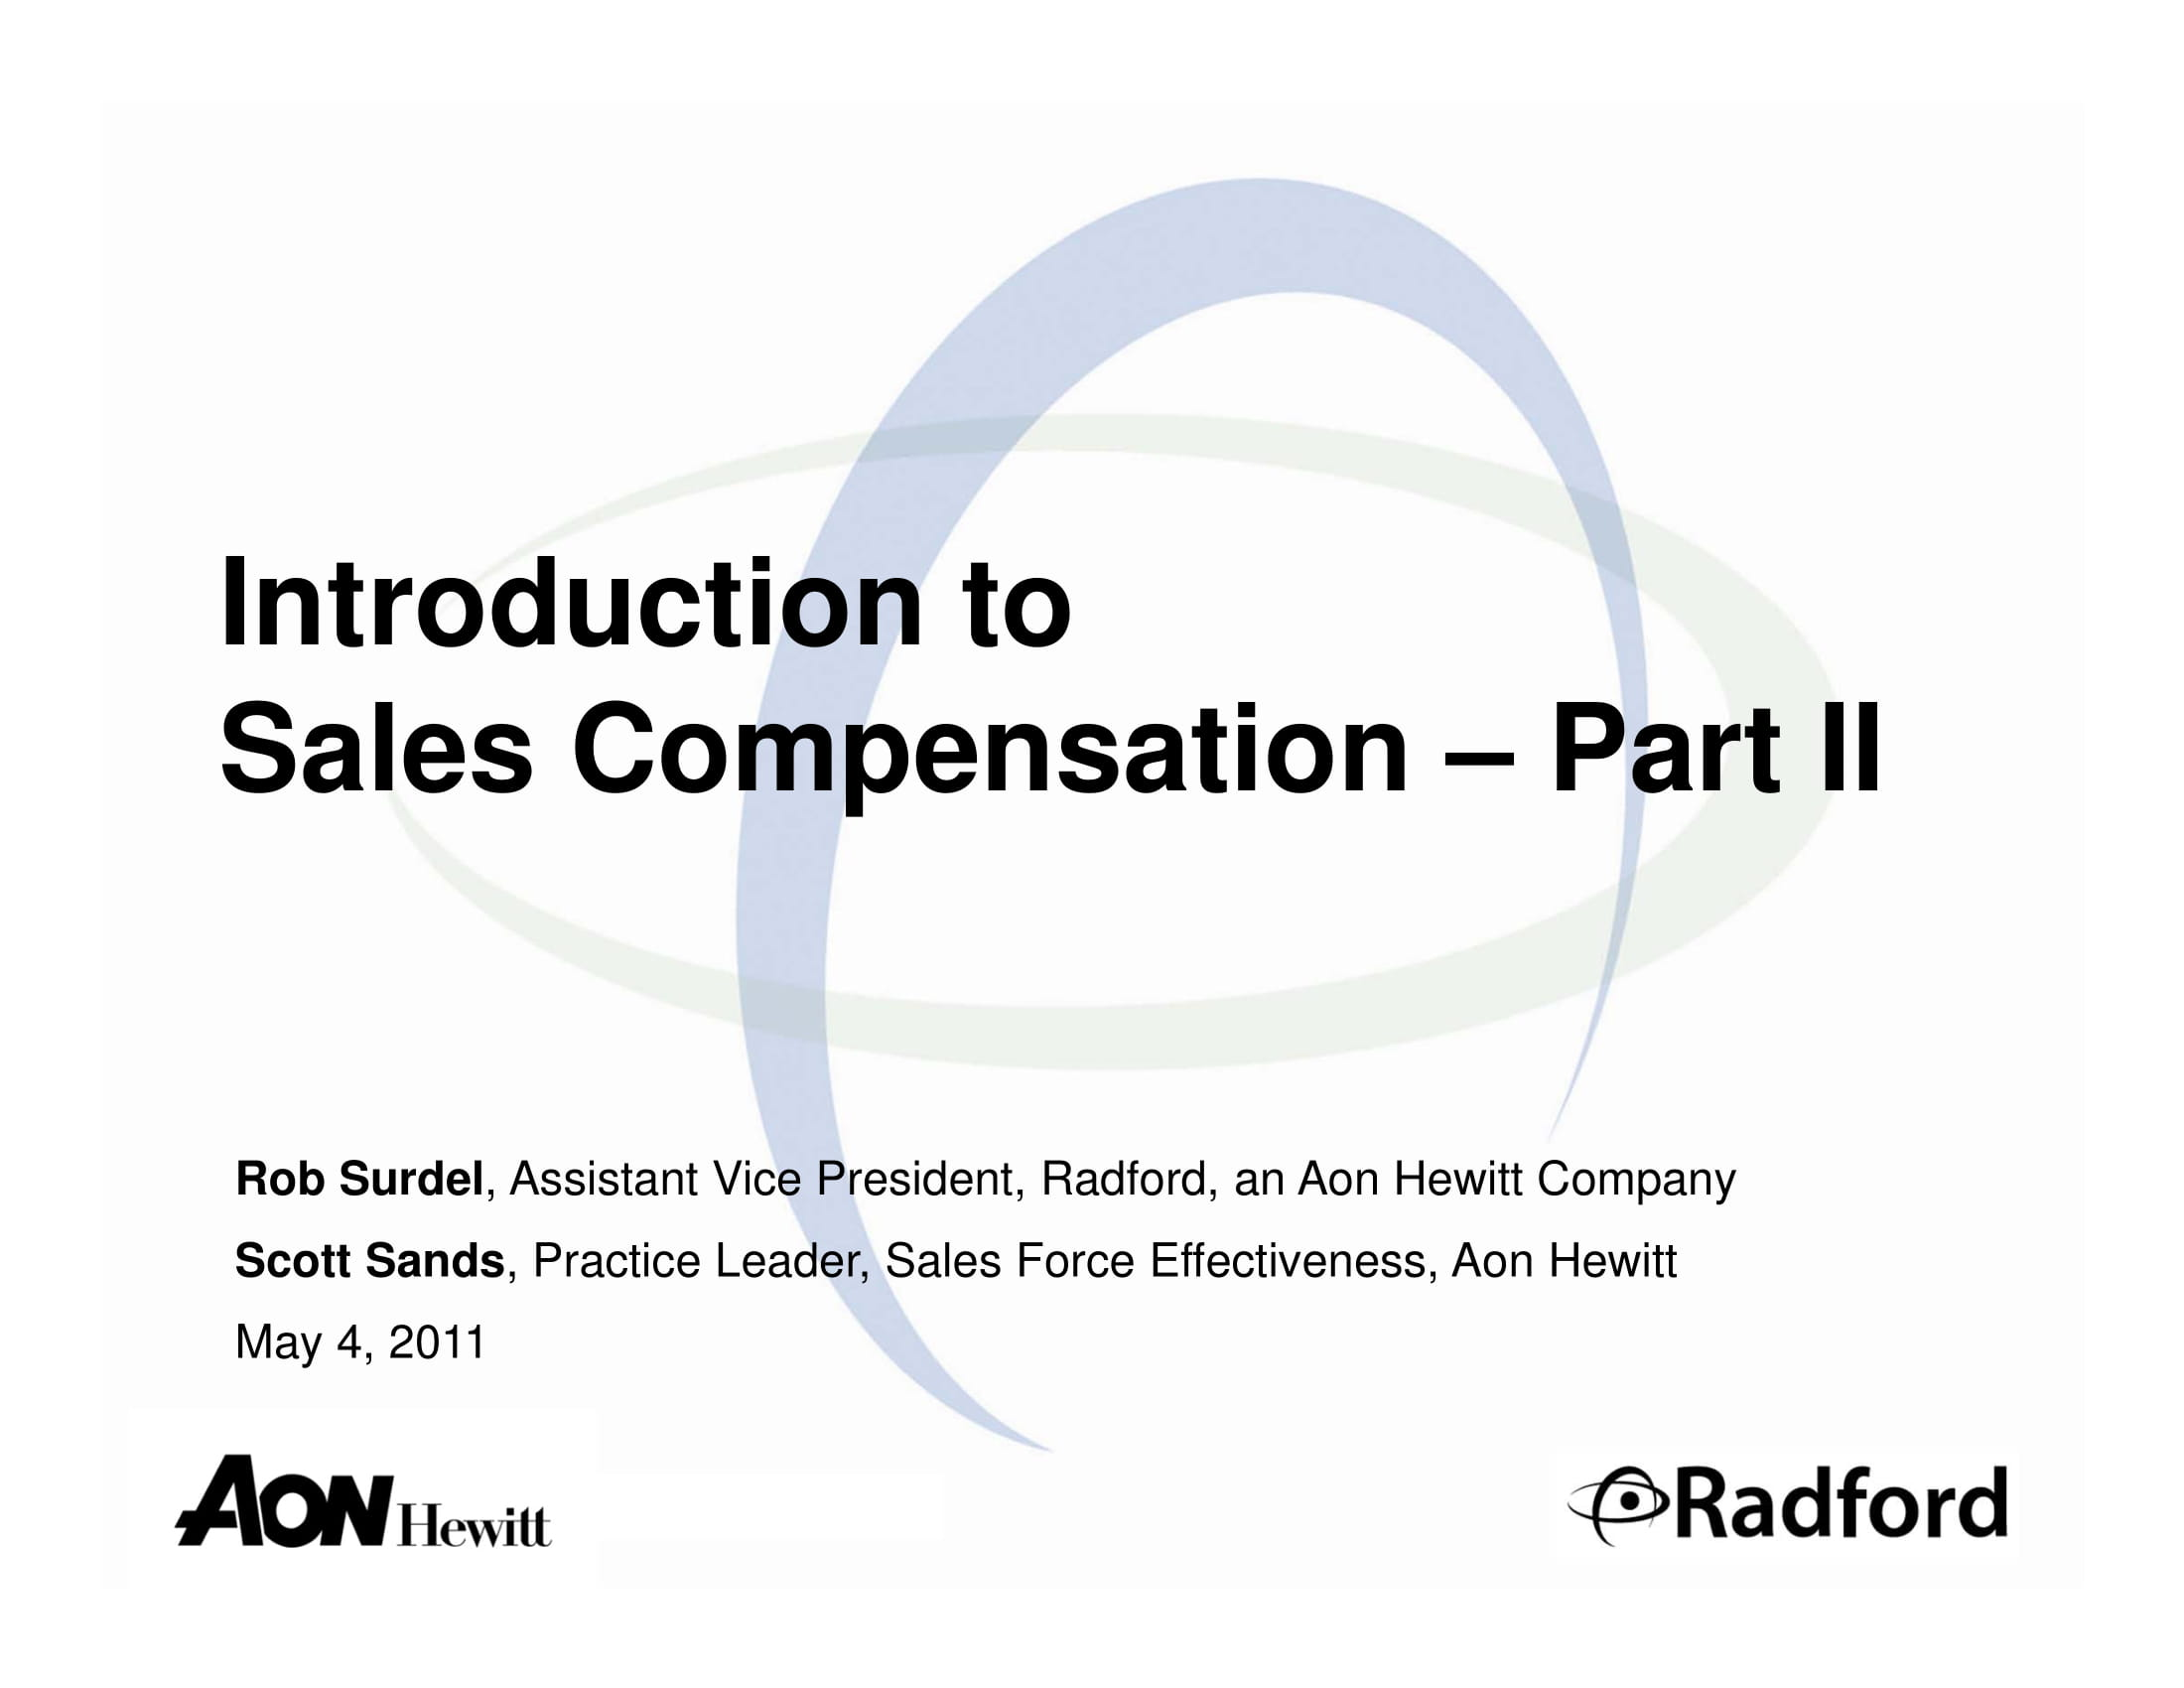 introduction to sales compensation policies format and content planning example 01